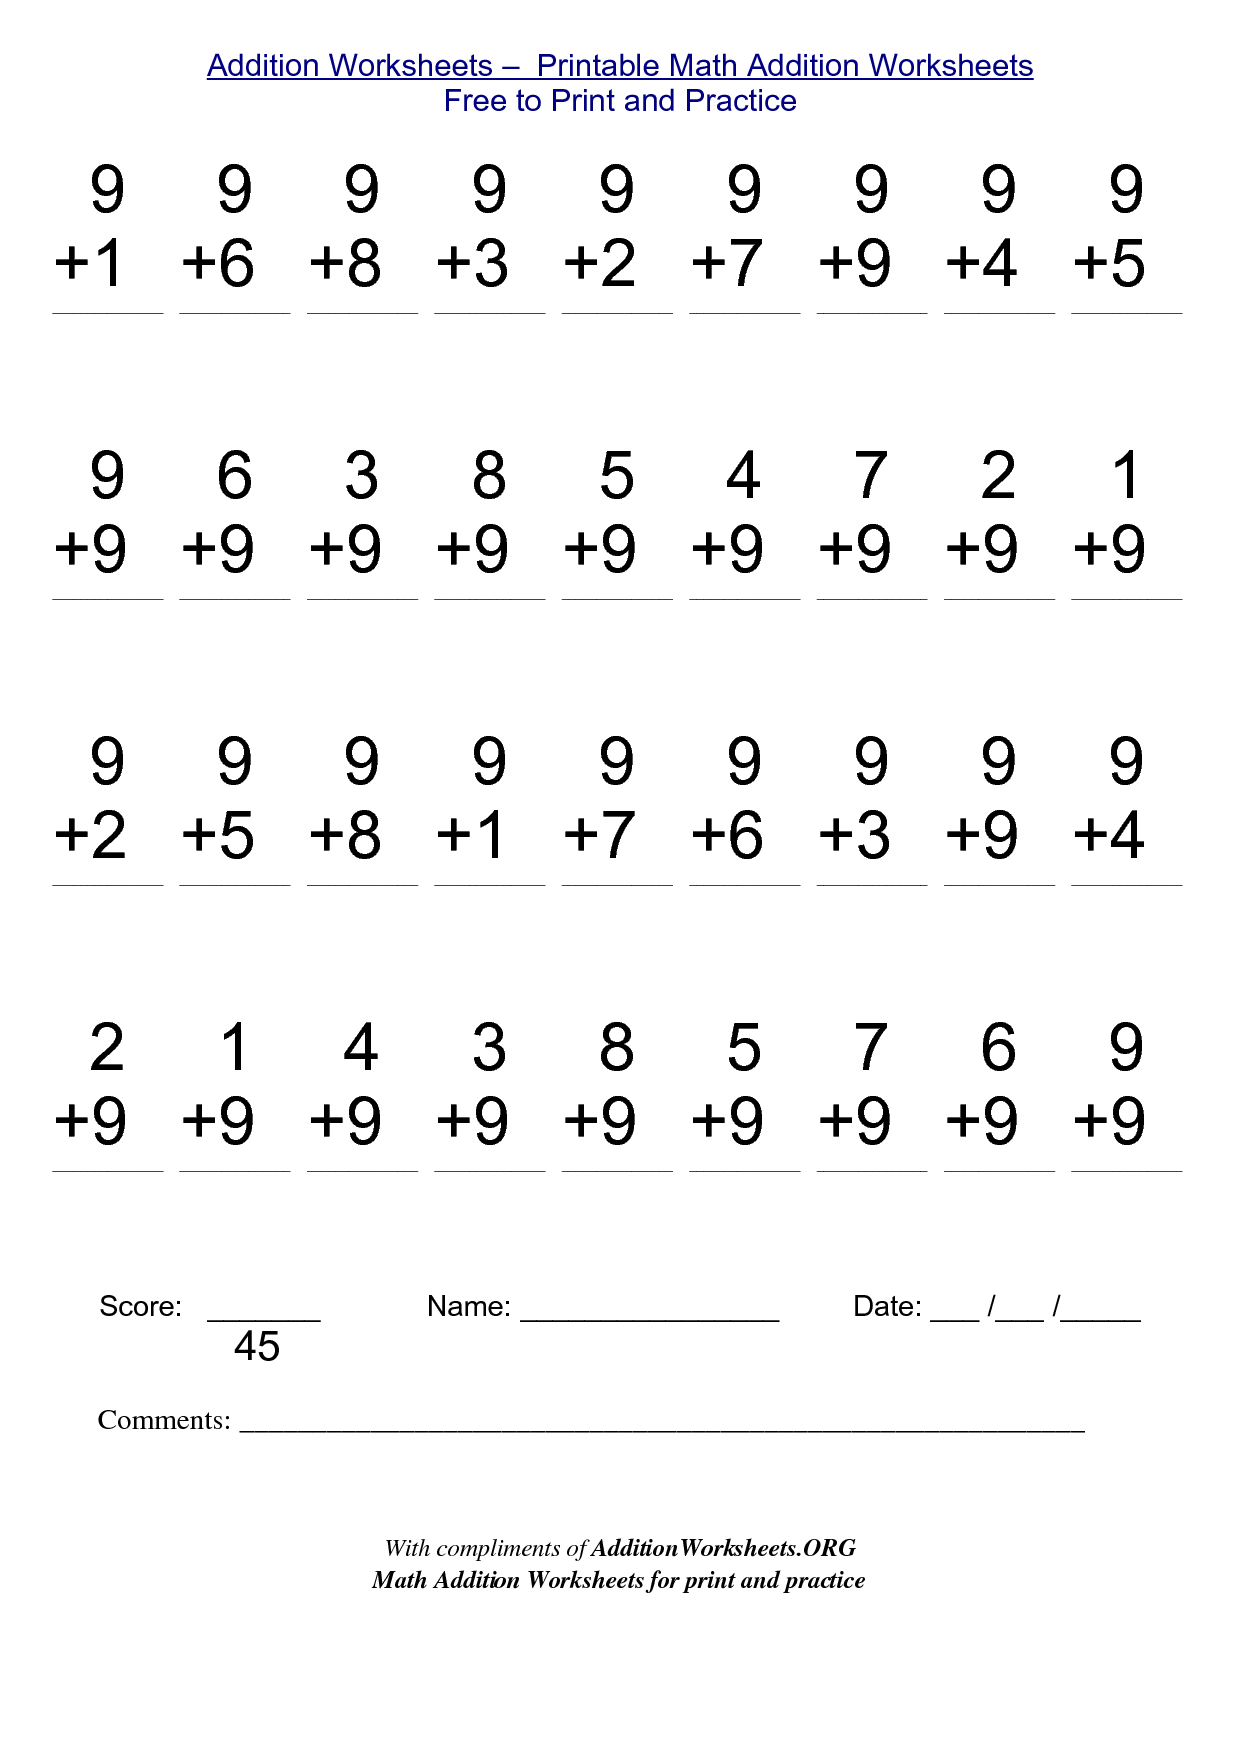 Worksheets Math Practice Worksheets For 3rd Grade math worksheets for free to print alot com me pinterest addition printable print